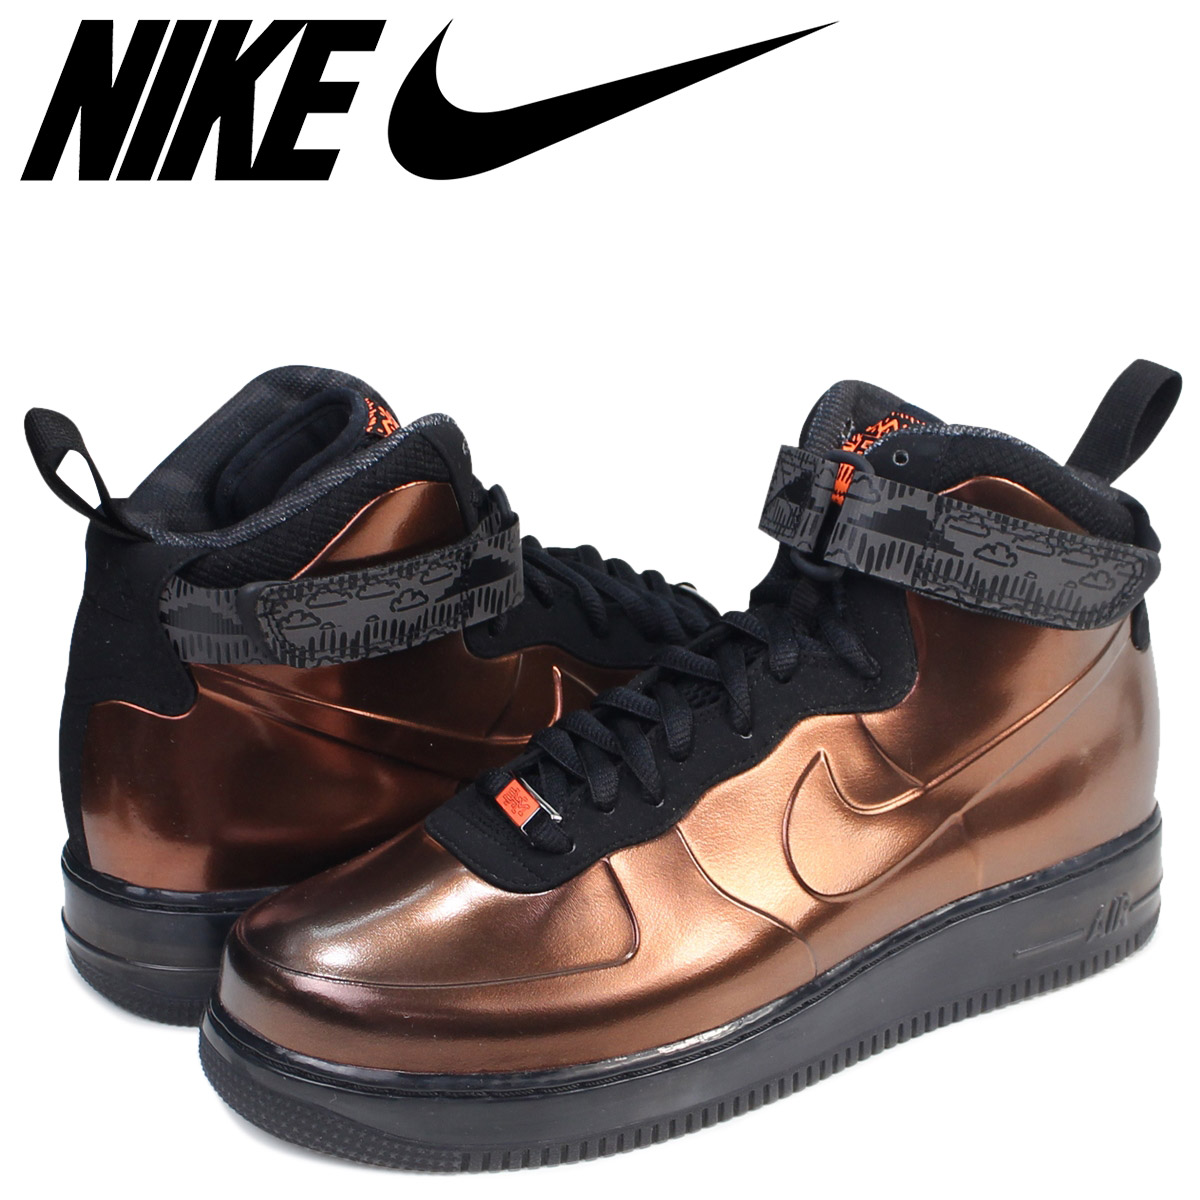 new product 60ed2 58d2d Nike NIKE air force 1 フォームポジットスニーカー AIR FORCE 1 FOAMPOSITE BHM QS 586,583-  ...